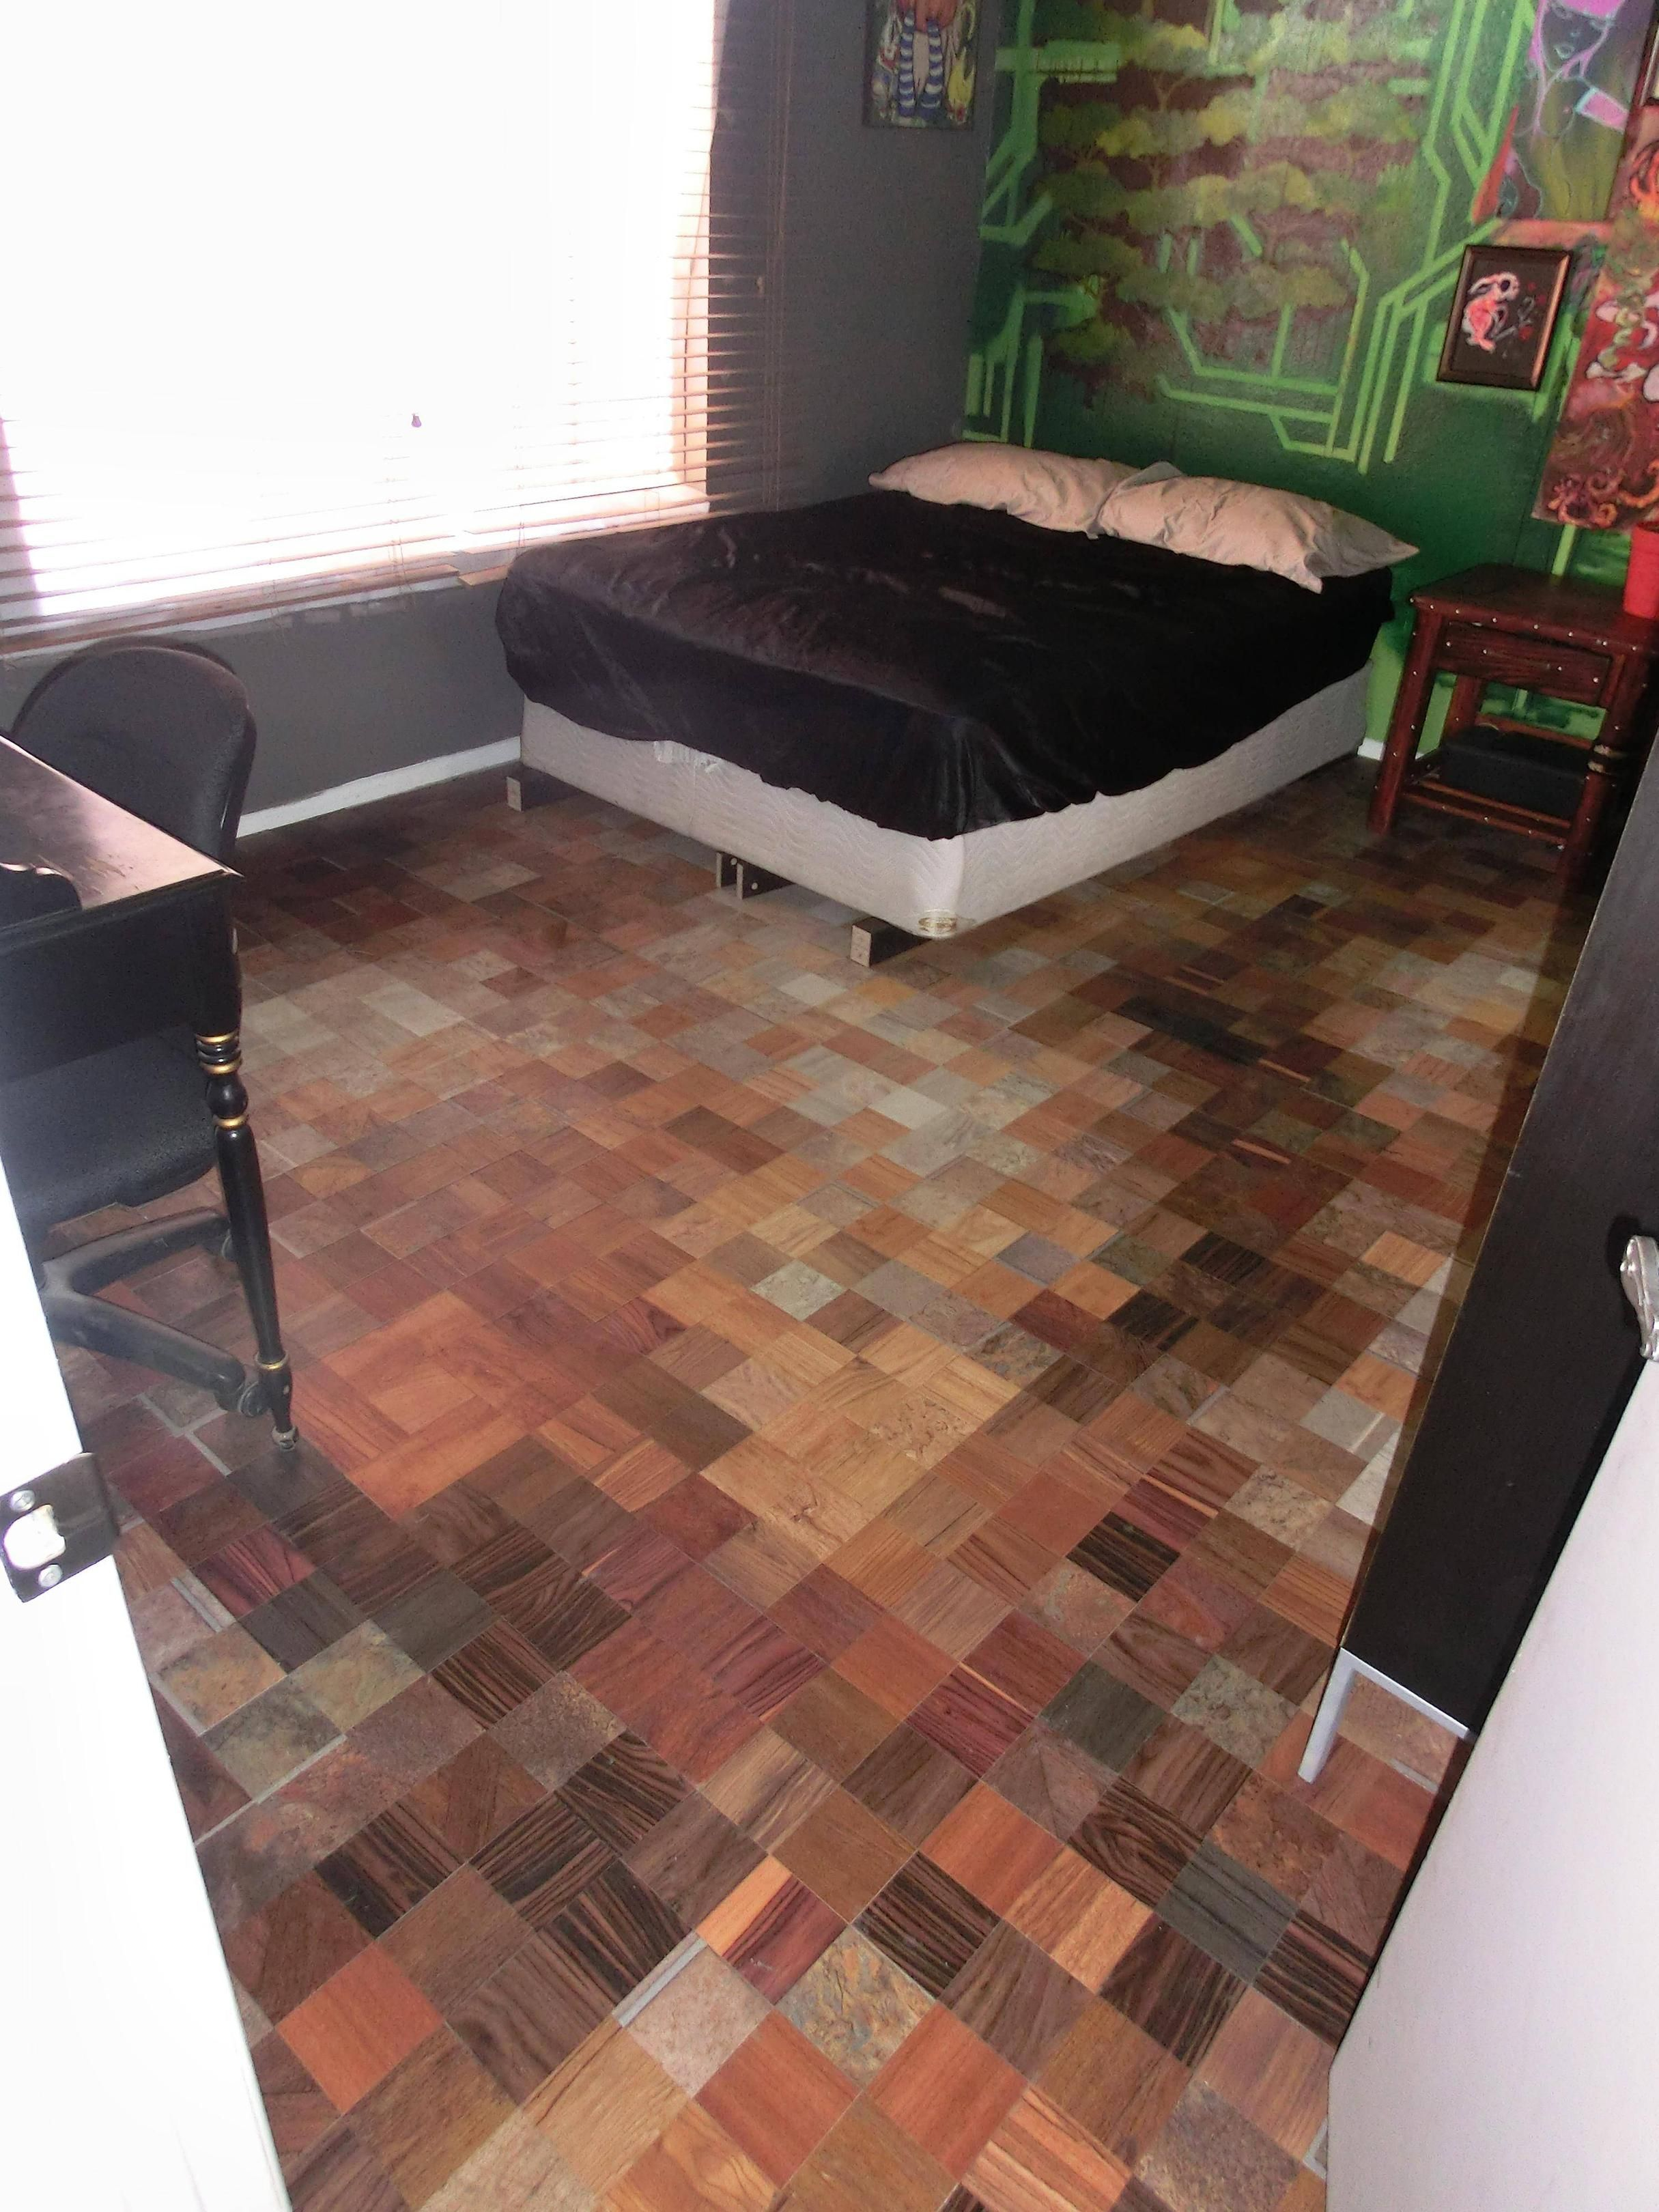 Wonderful I Really Want To Do This To My Apartment, Its Free Wood Flooring Samples  From Home Depot.